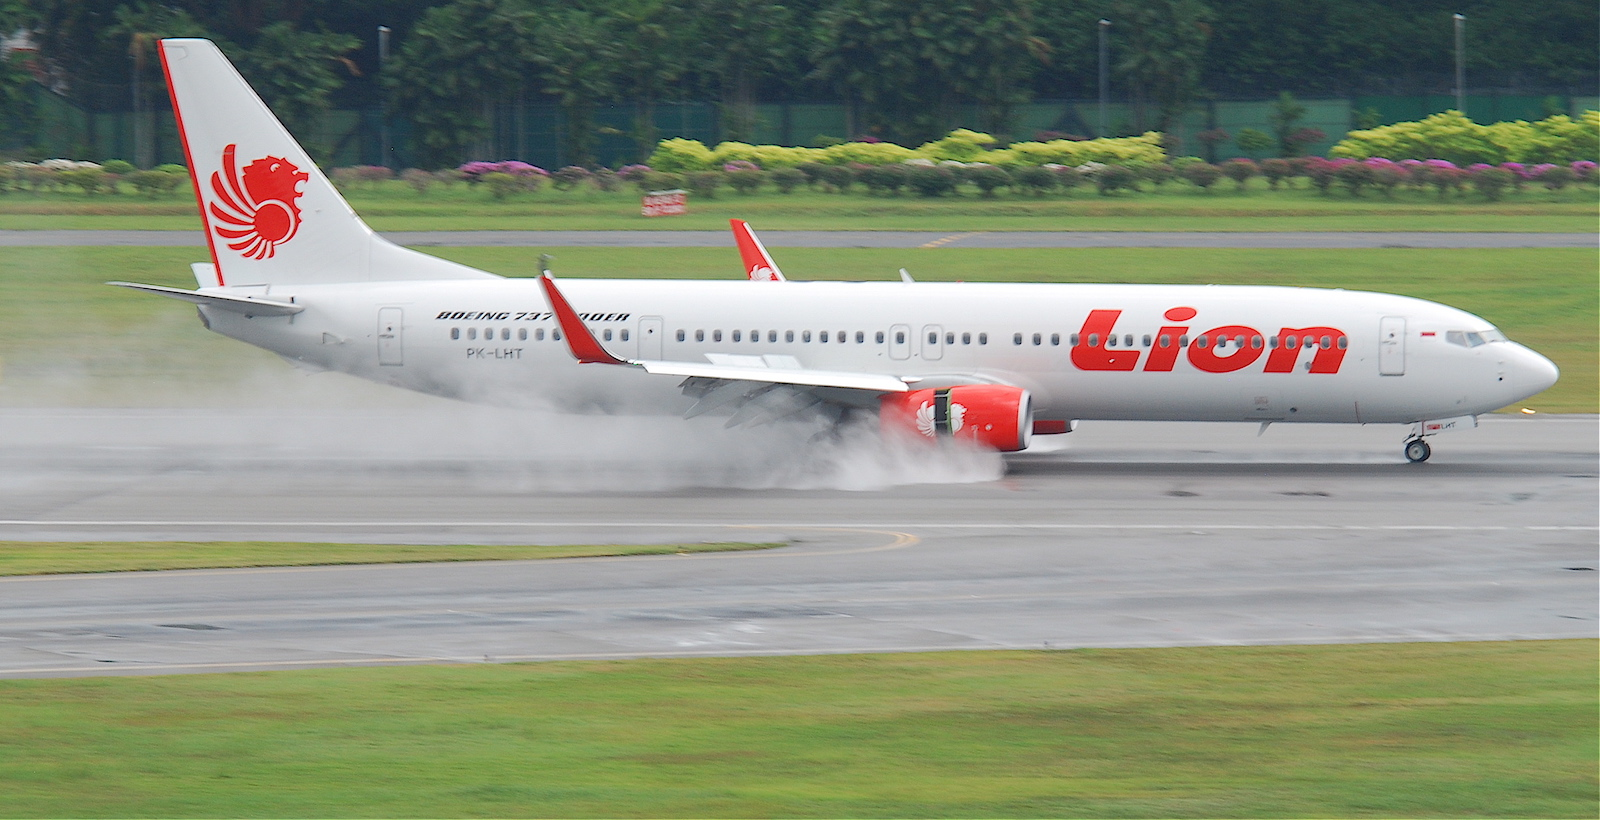 Lion Air's safety record makes for troubling reading – 14 accidents, several serious, from 2002 onwards. (Photo: Wikimedia Commons)